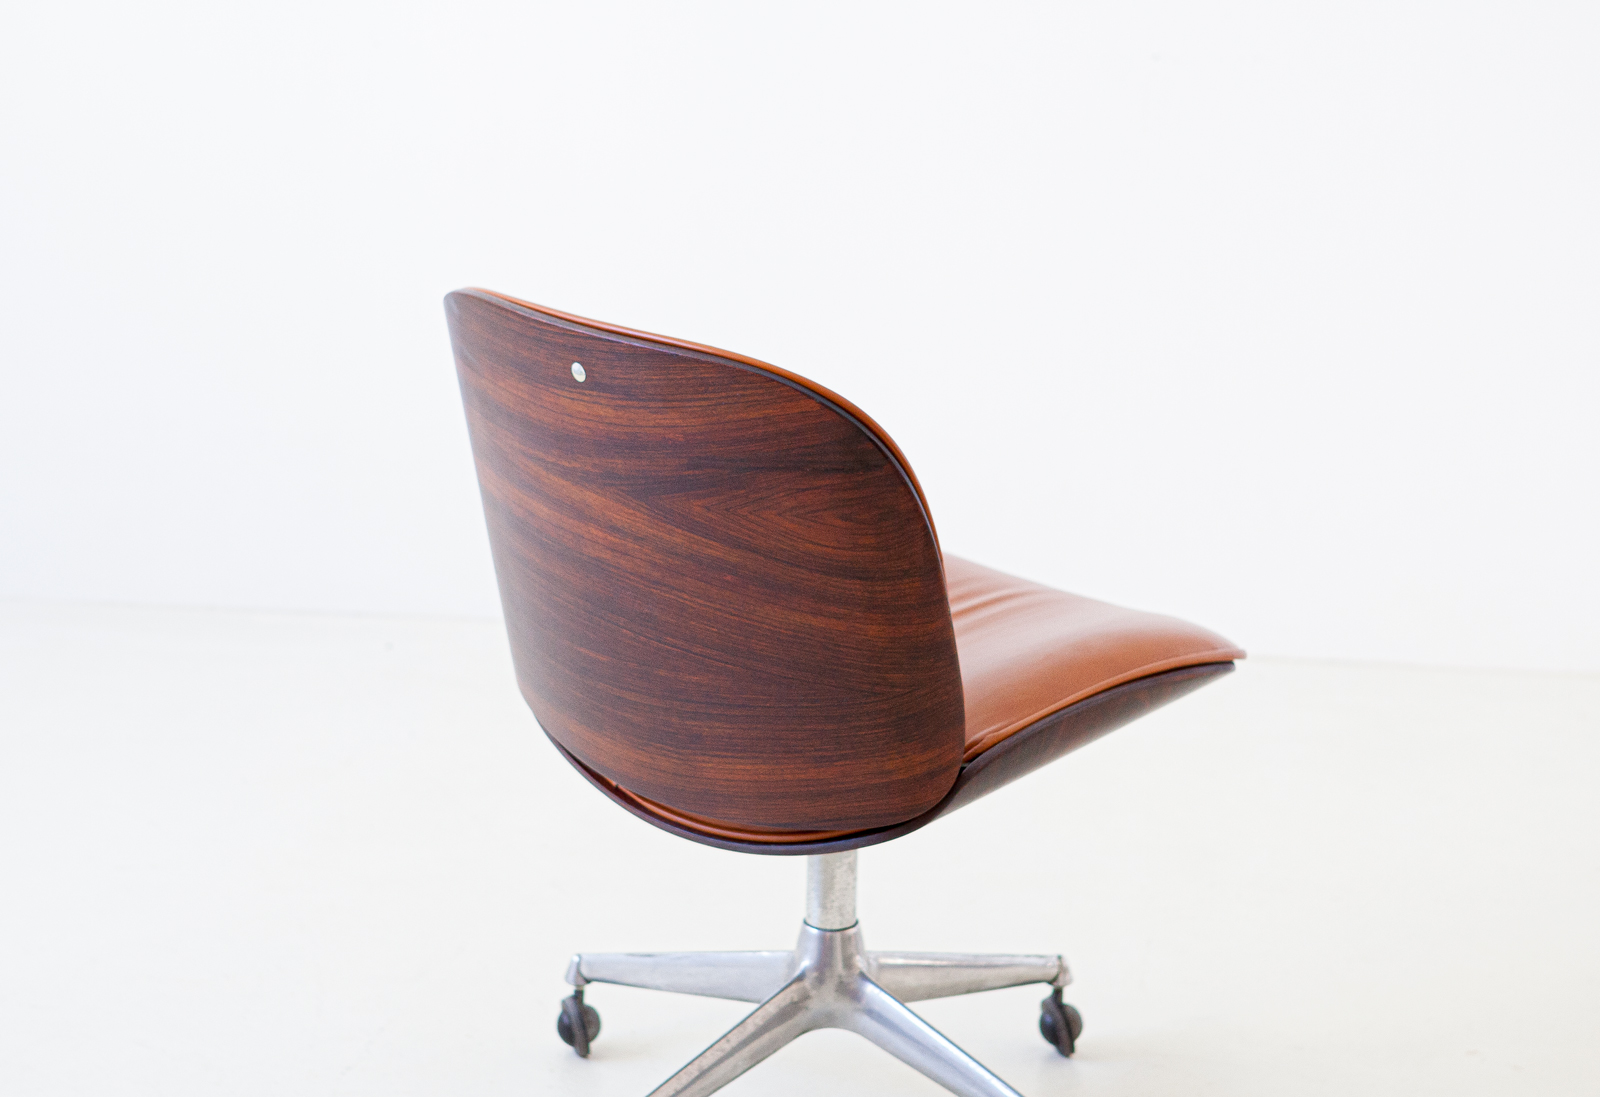 1950s-rosewood-and-cognac-leather-swivel-chair-by-ico-parisi-for-mim-8-se328a